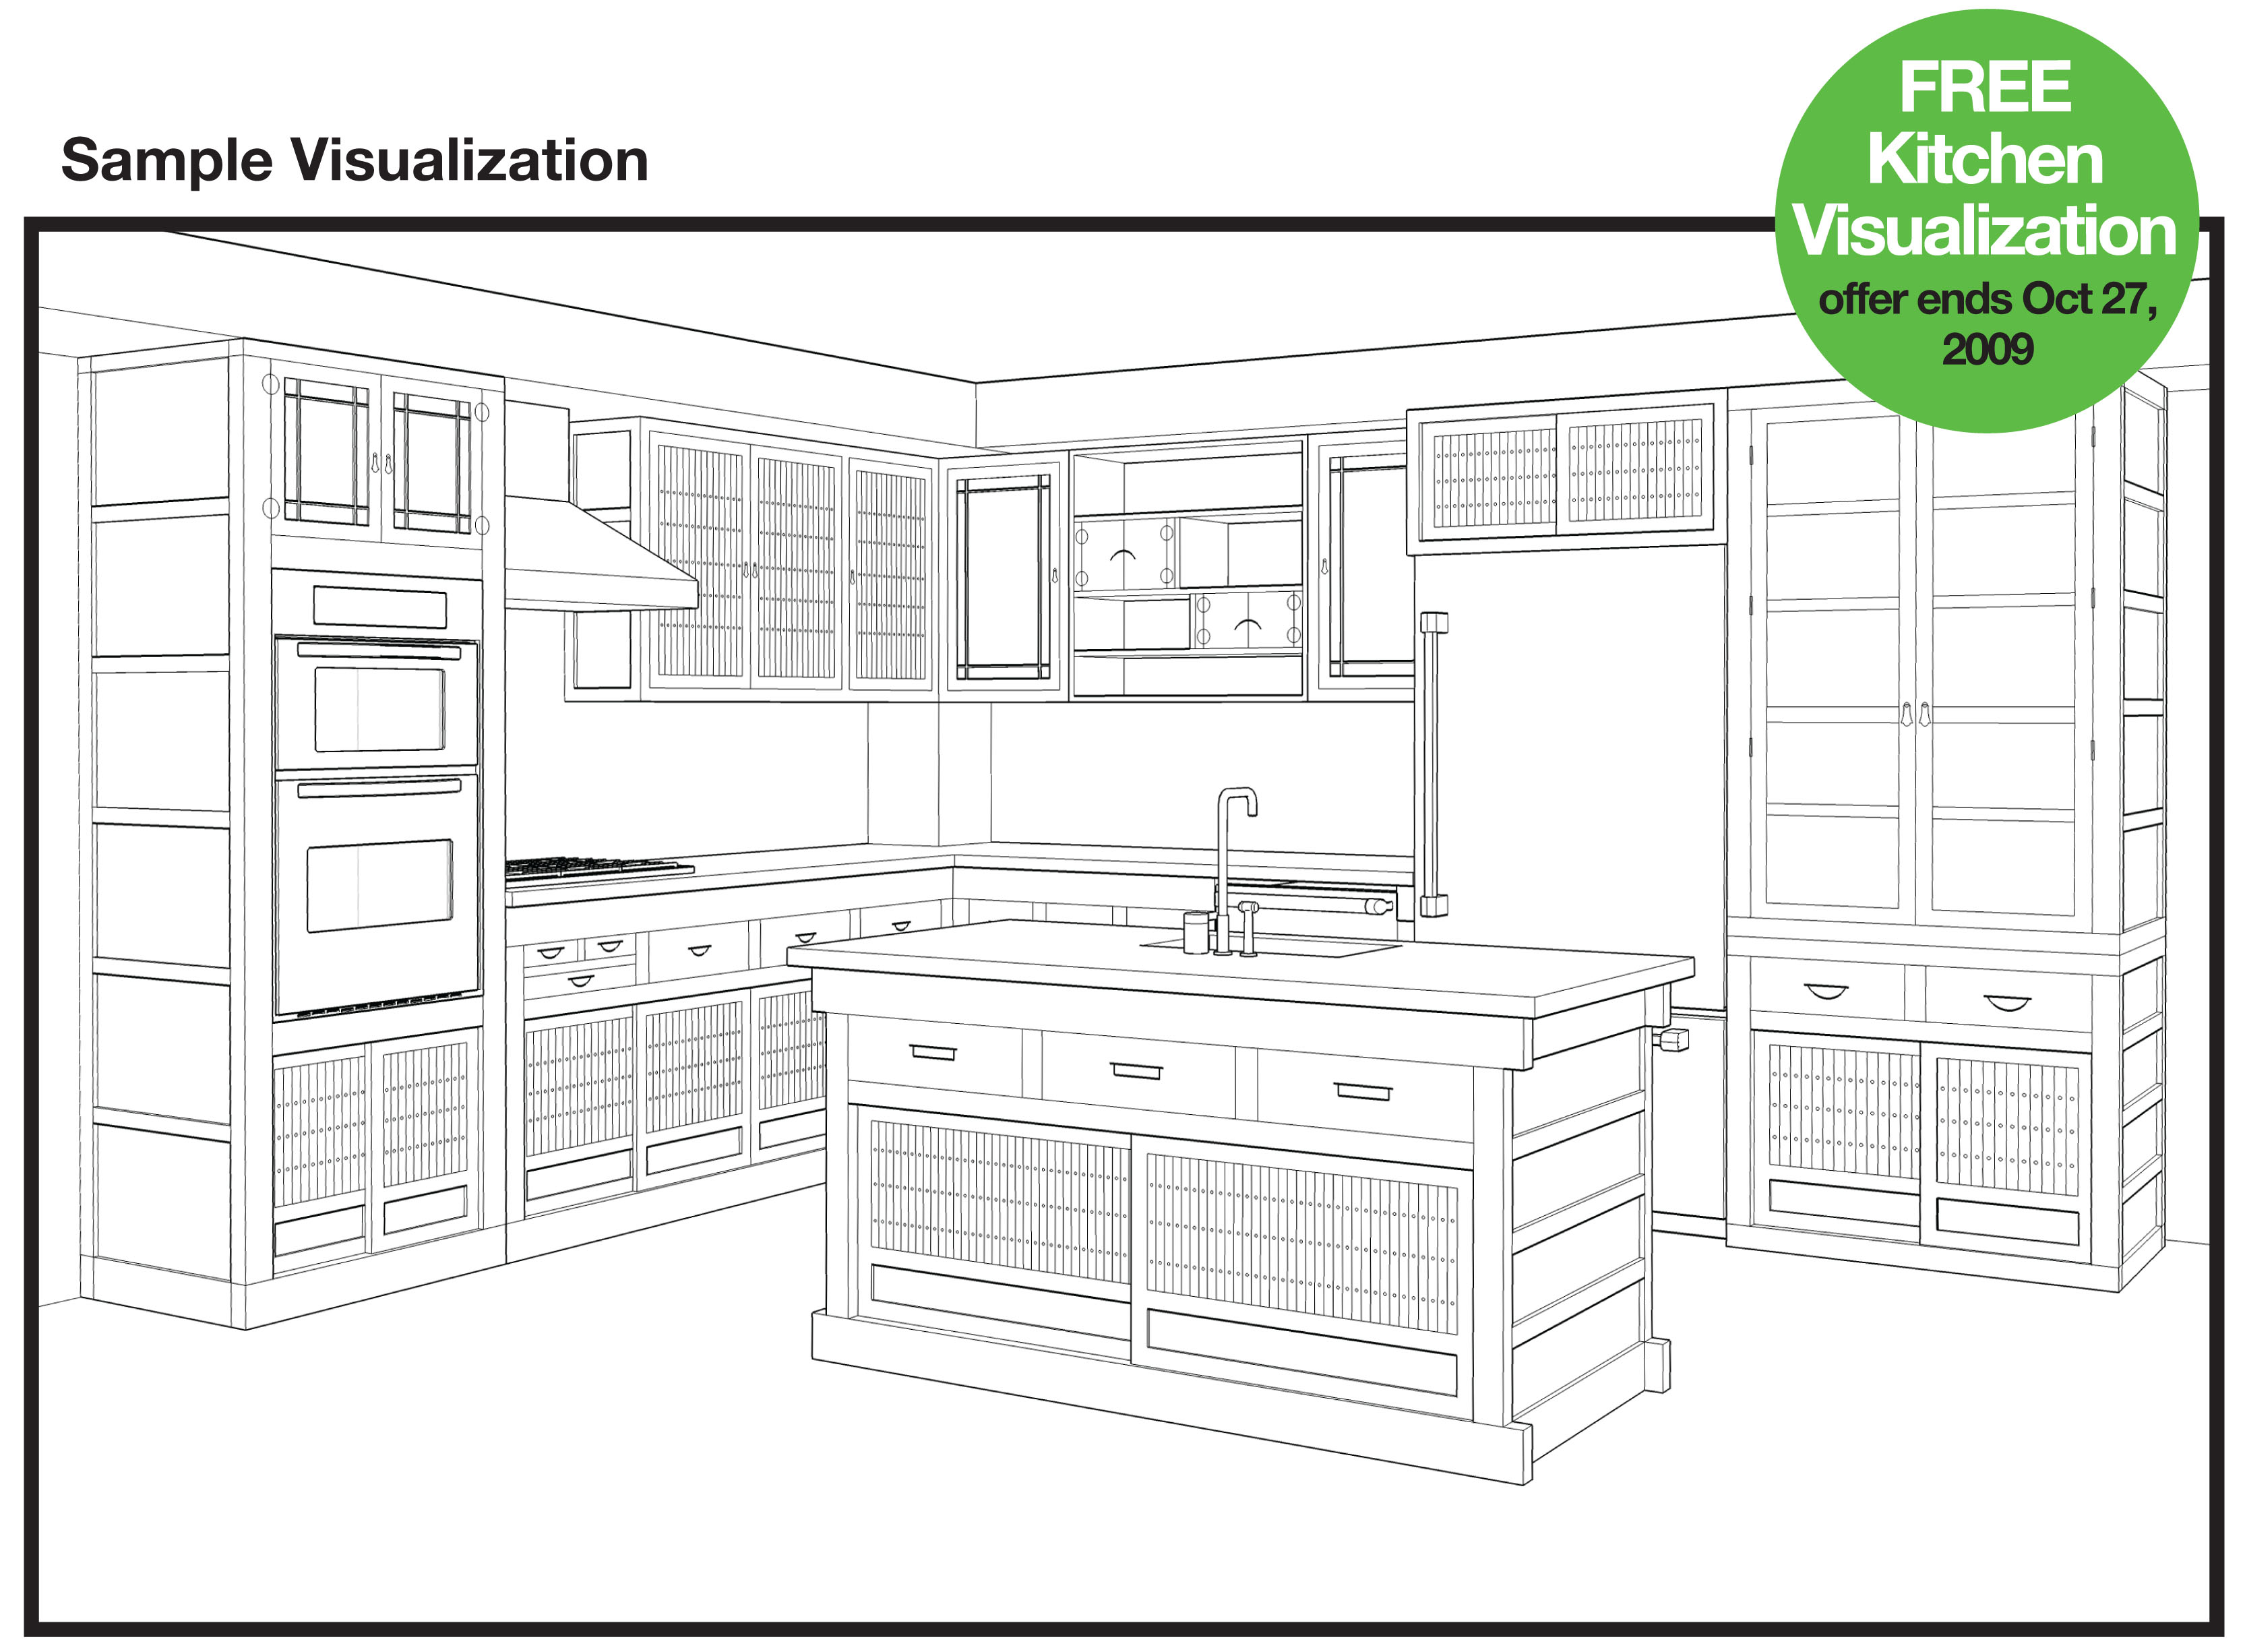 Greentea design 39 s exclusive kitchen promotion for Kitchen visualizer free